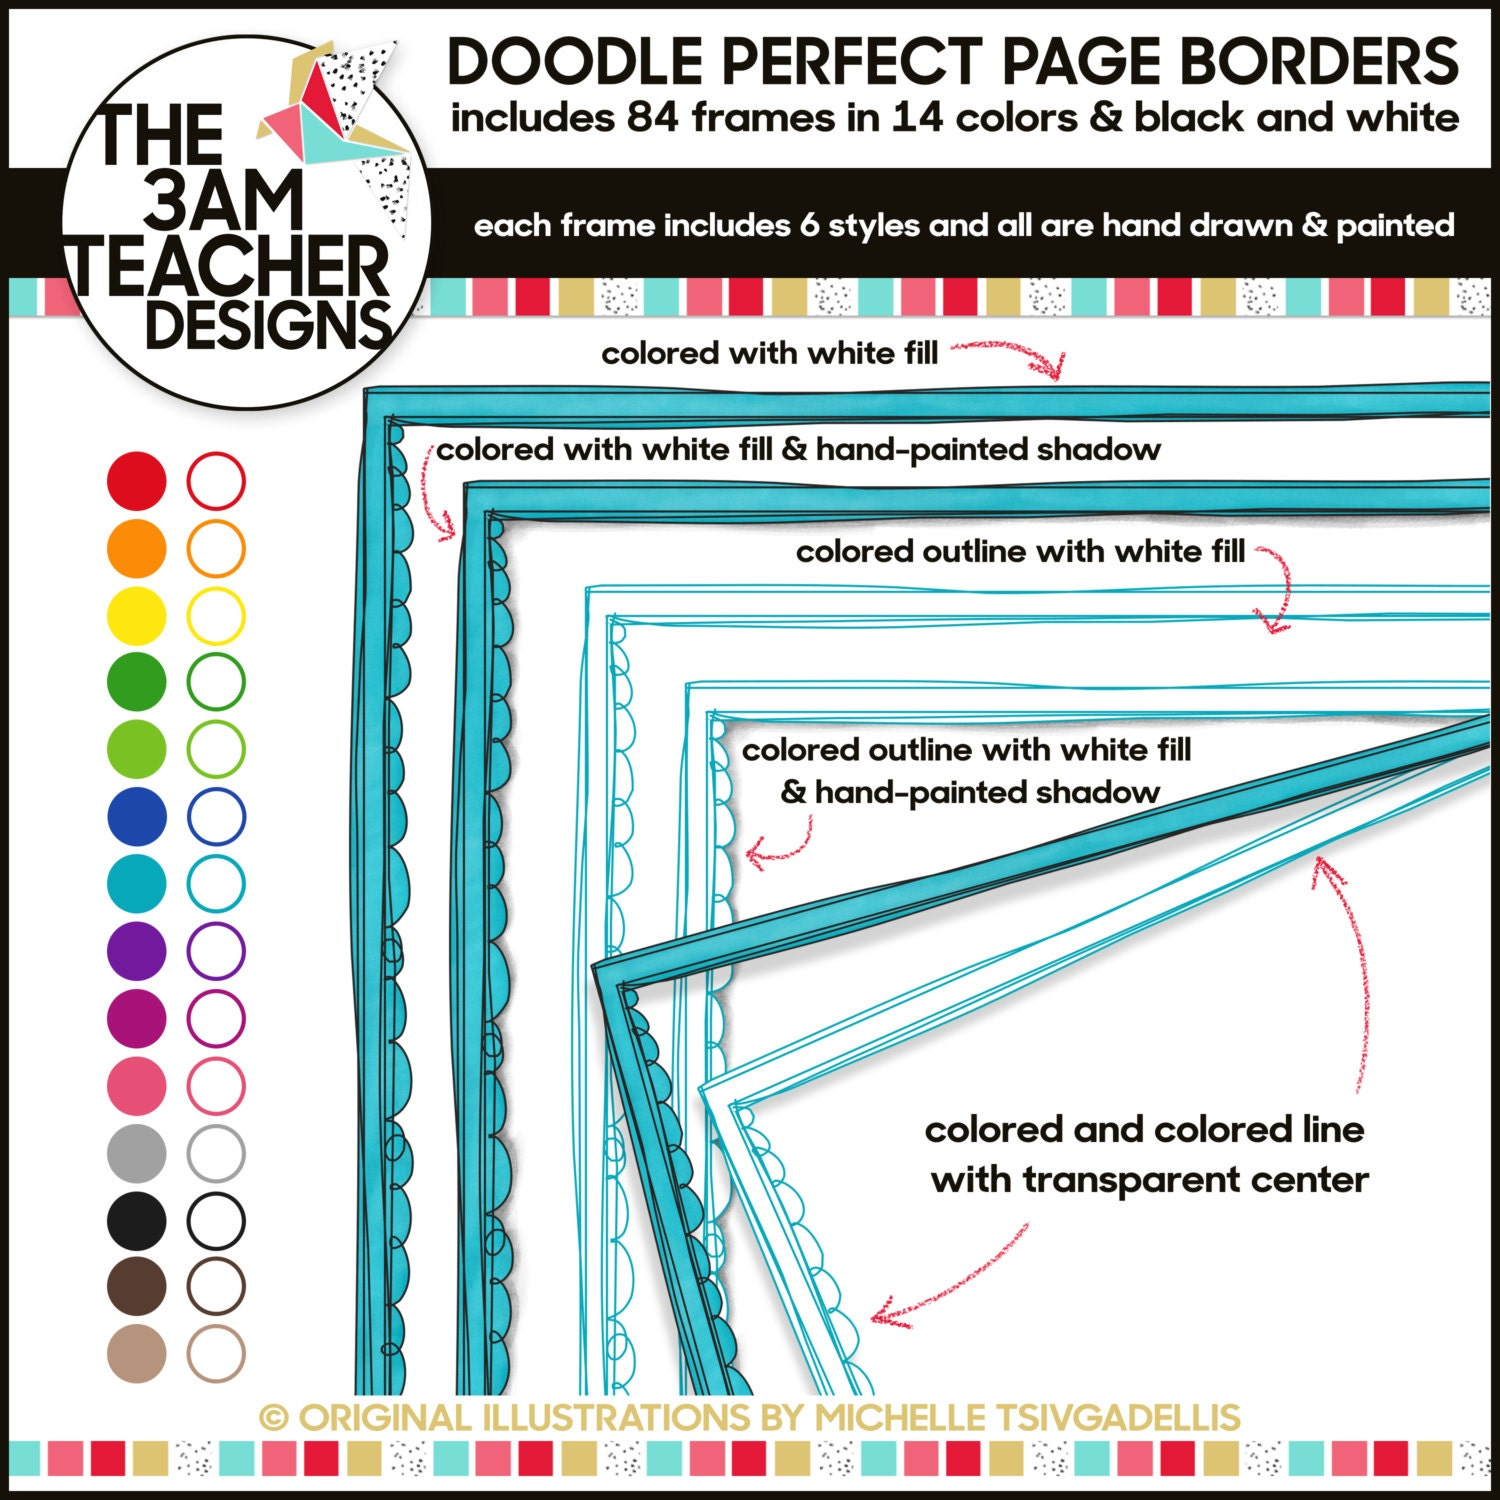 clip art 84 colorful doodle page borders from the3amteacher on